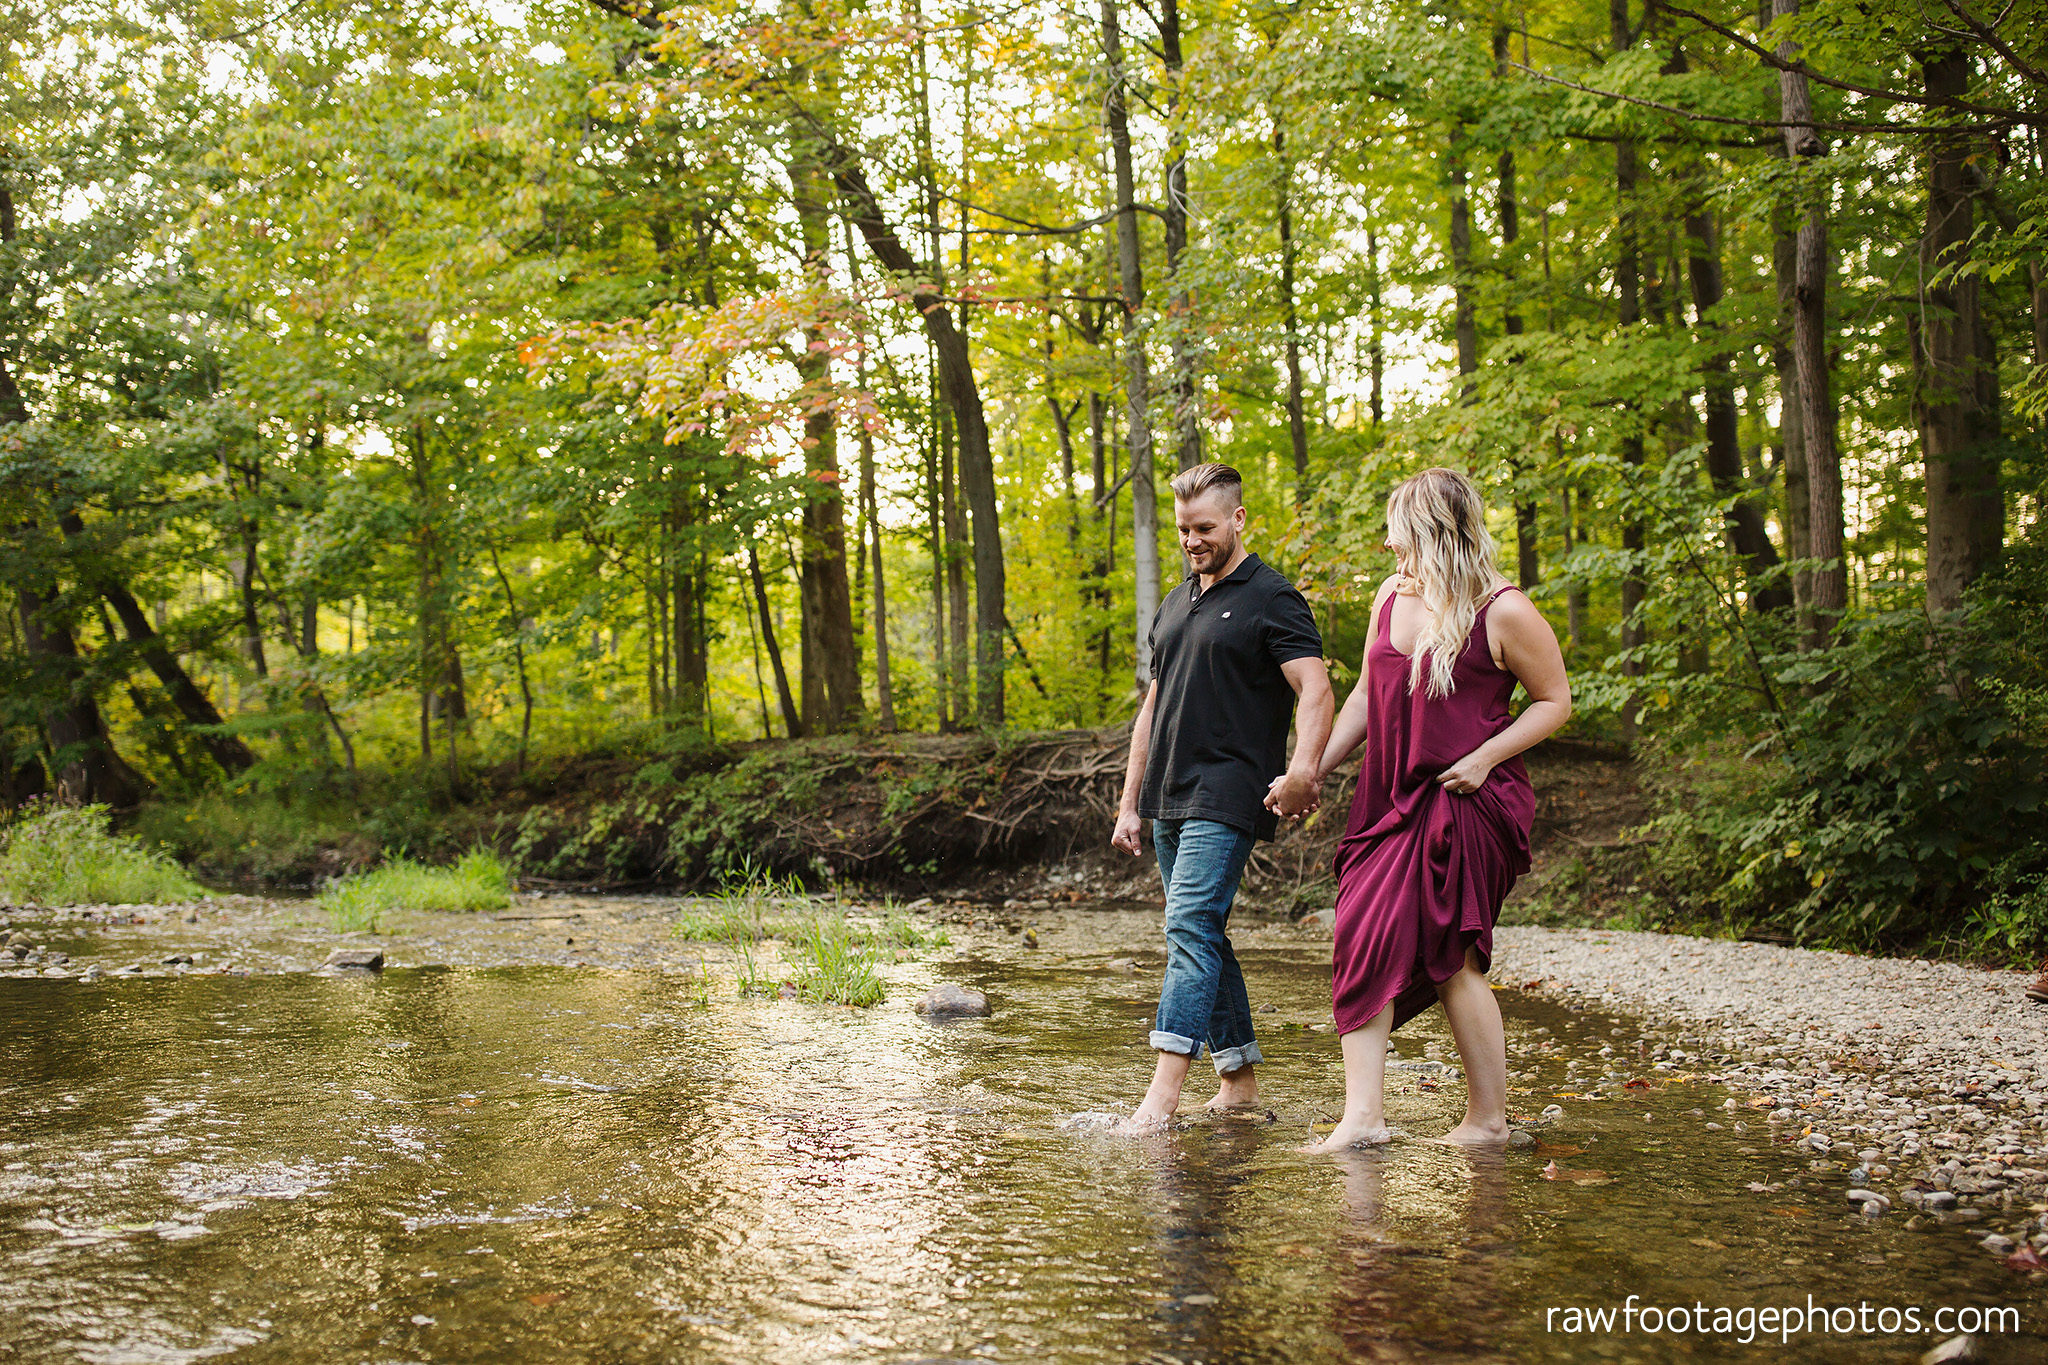 london_ontario_wedding_photographer-woodsy_engagement_session-e_session-engagement_photos-medway_creek-medway_heritage_forest-raw_forest_photography024.jpg